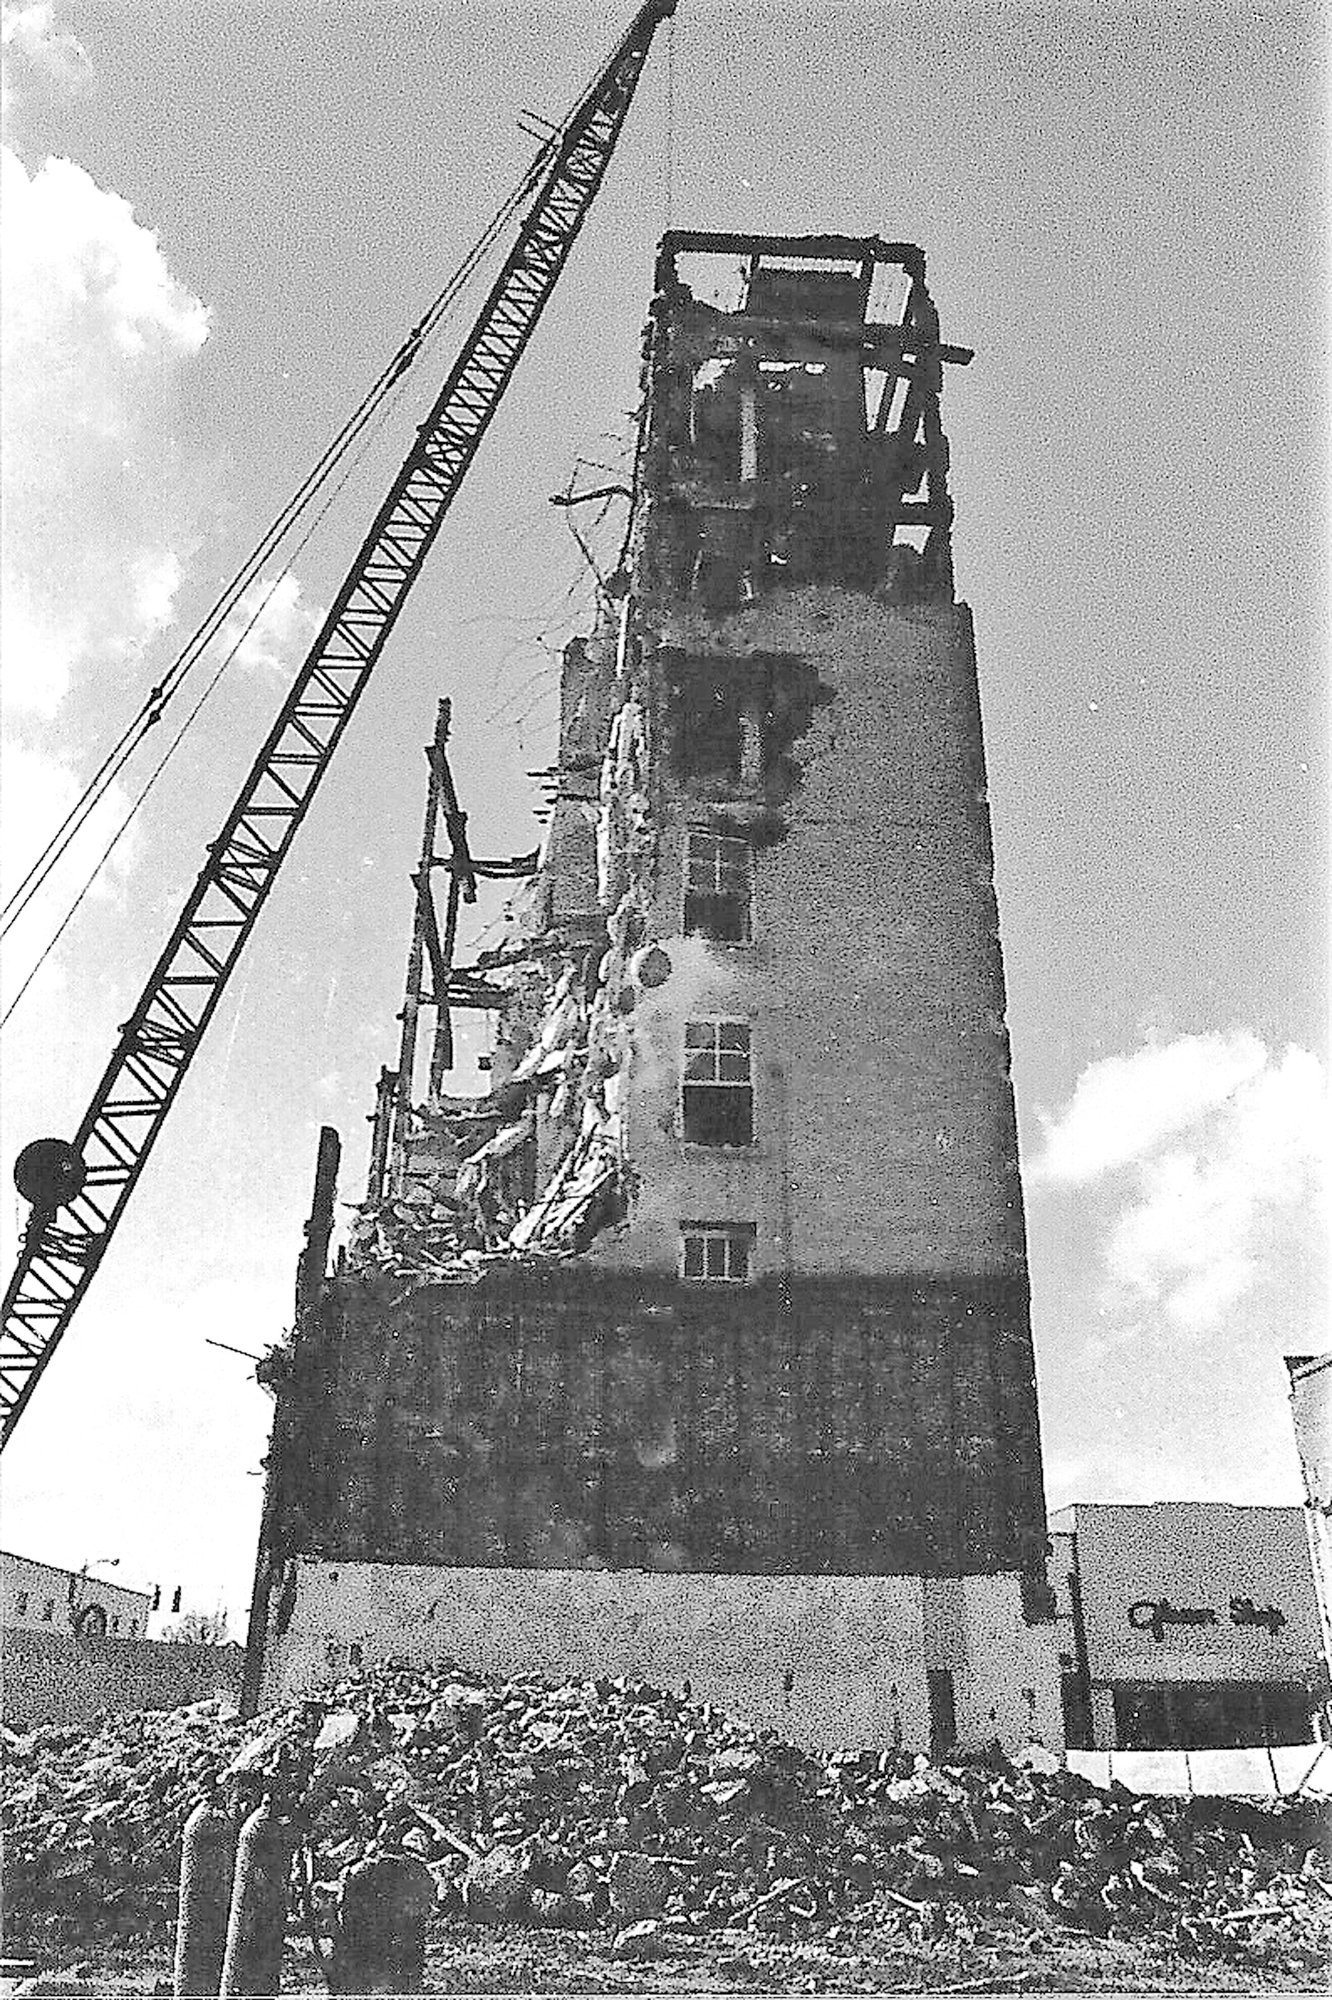 The Dixie Life Building is demolished in 1973.